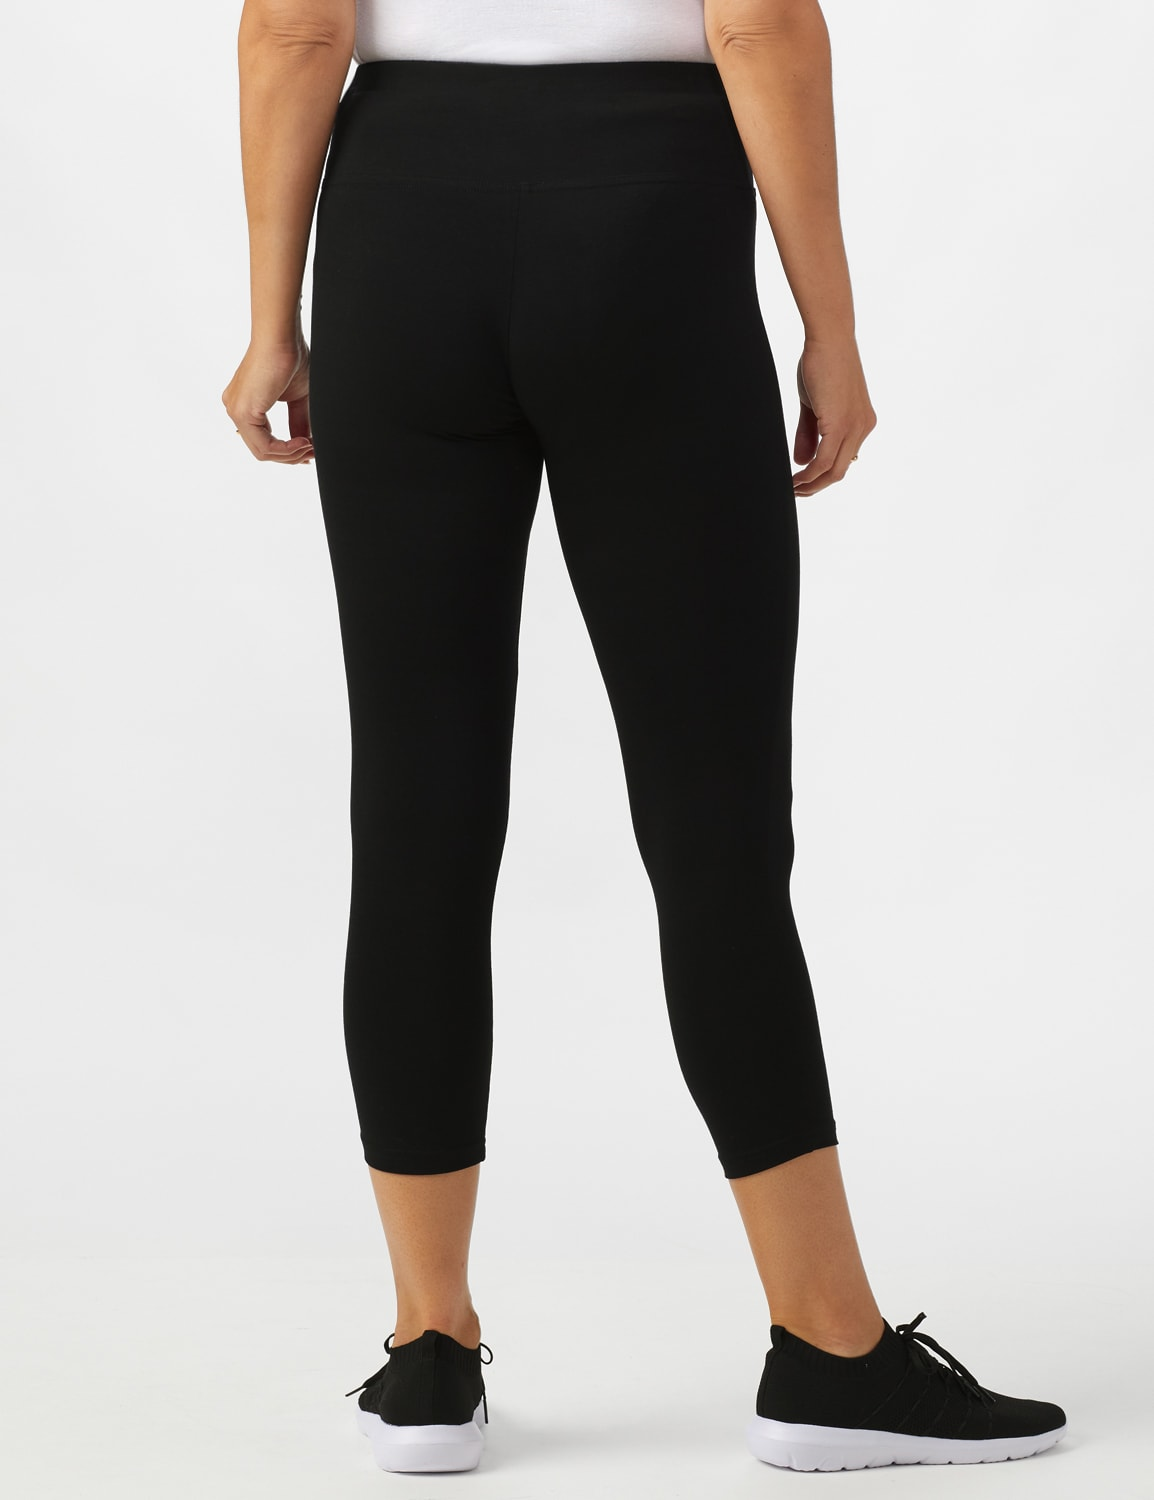 Tummy Control Capri - Black - Back